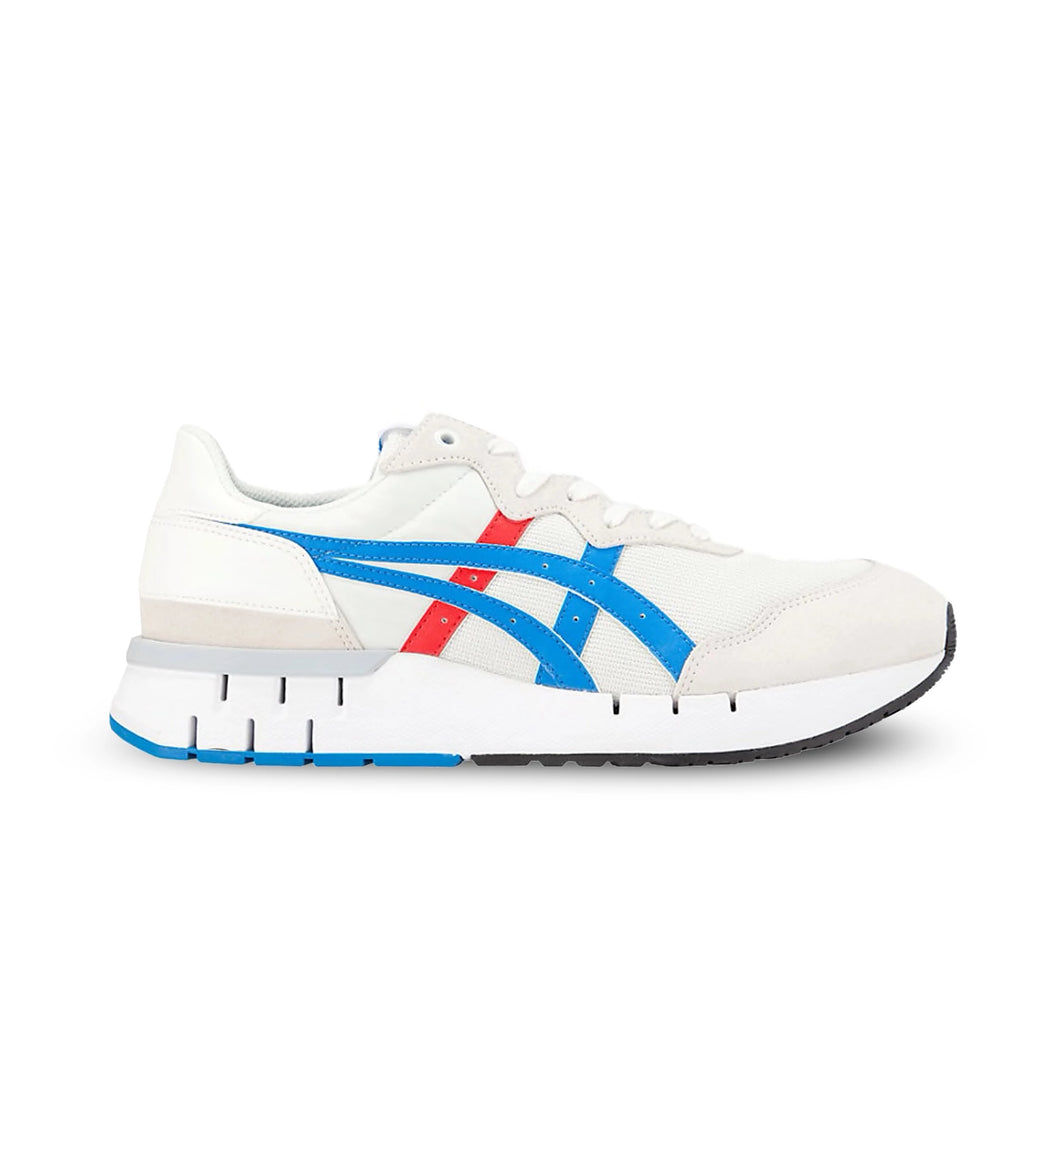 ASICS – REBILAC RUNNER (CREAM/BLUE/RED)